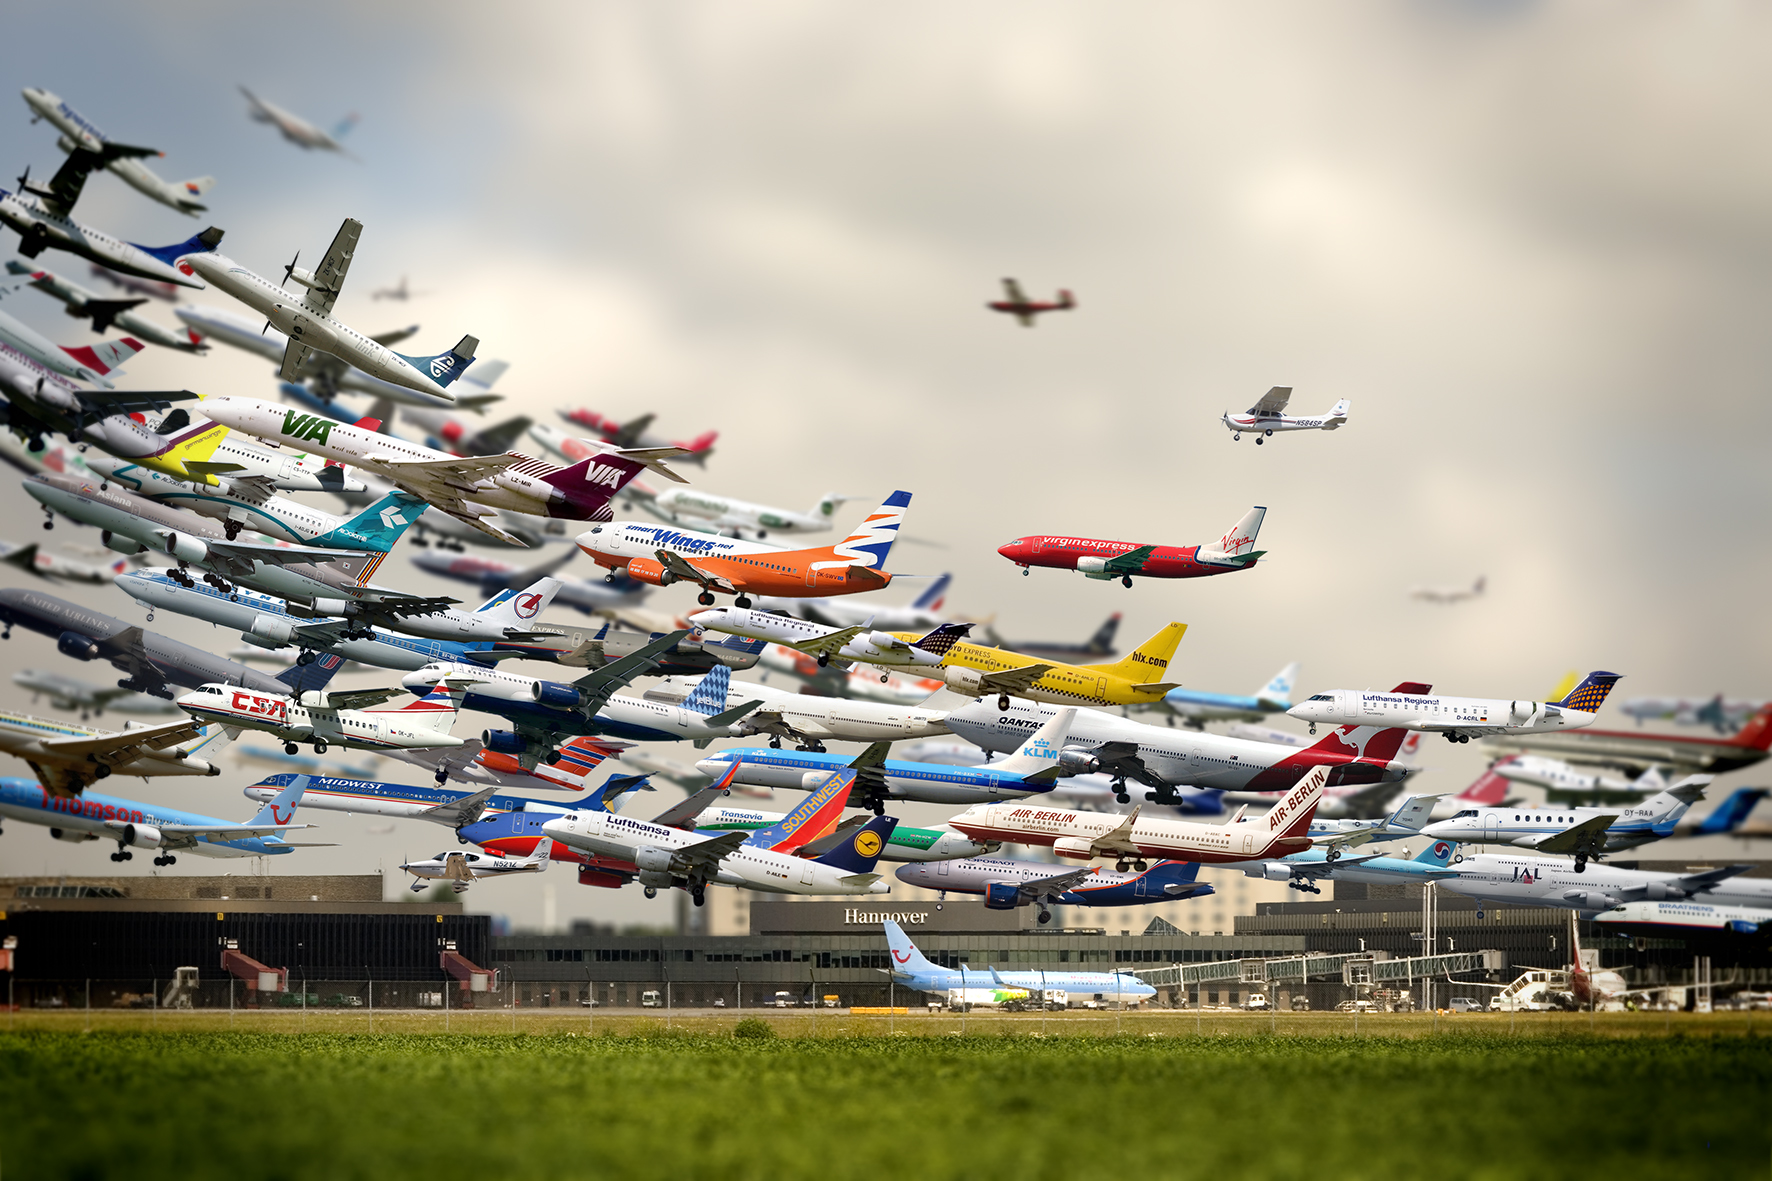 Aviation Justice | Americans against aviation impacts